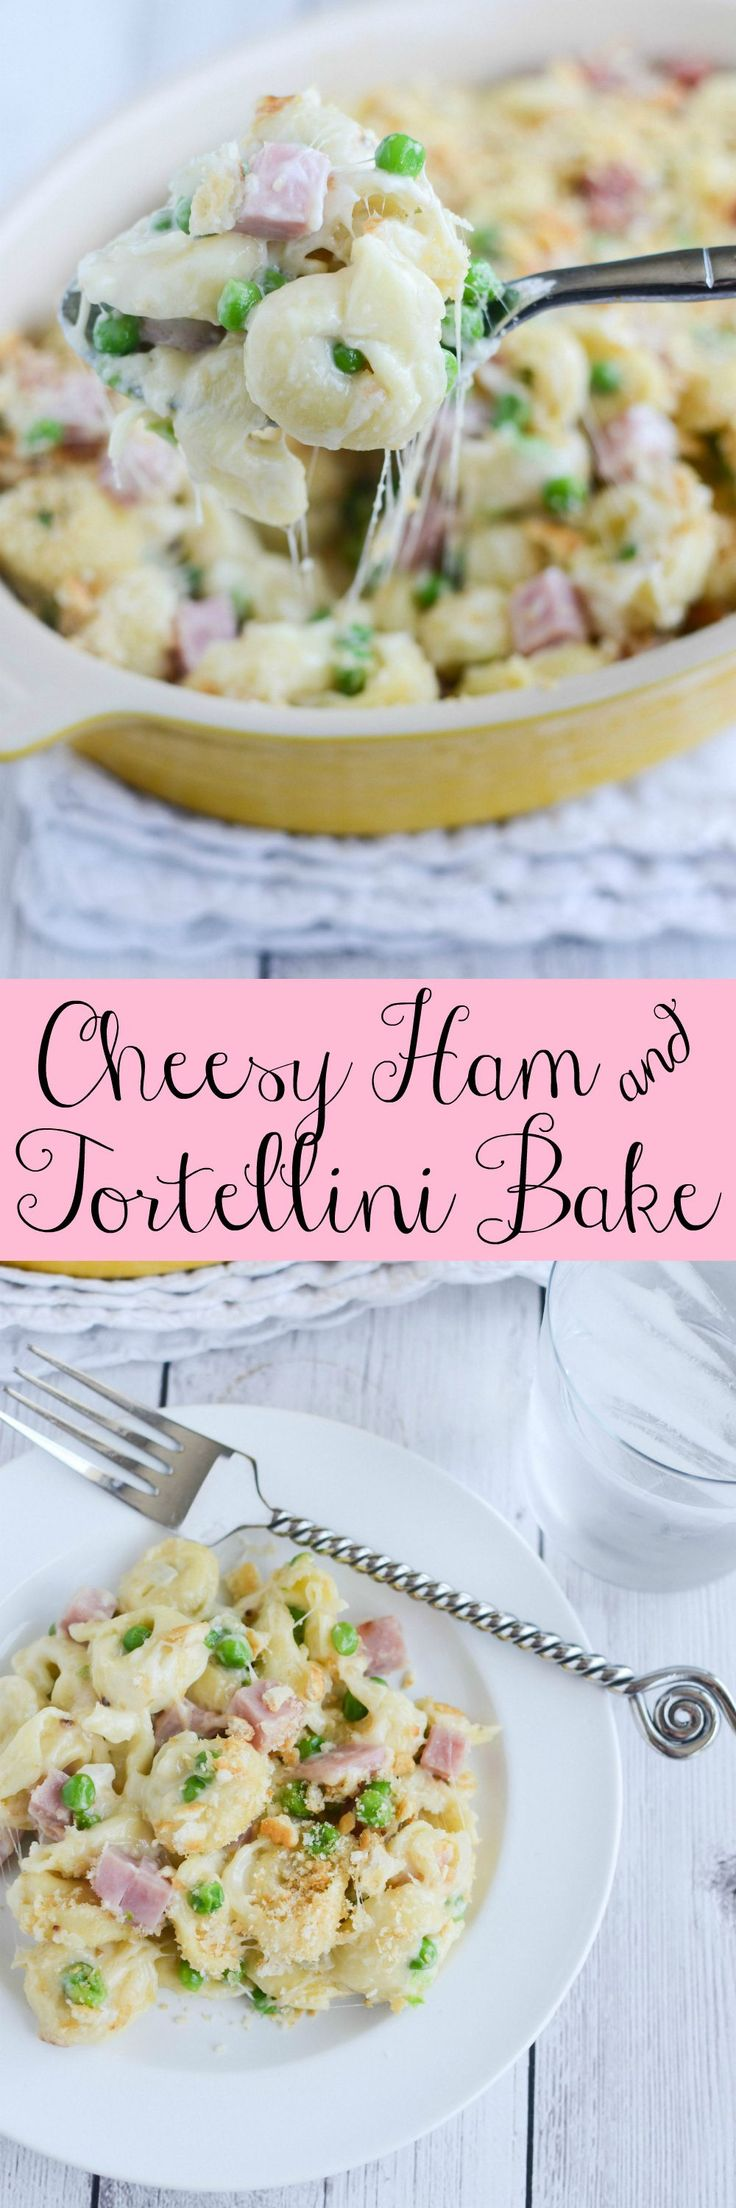 Cheesy Ham and Tortellini Bake - a delicious 30 minute meal the whole family will love!